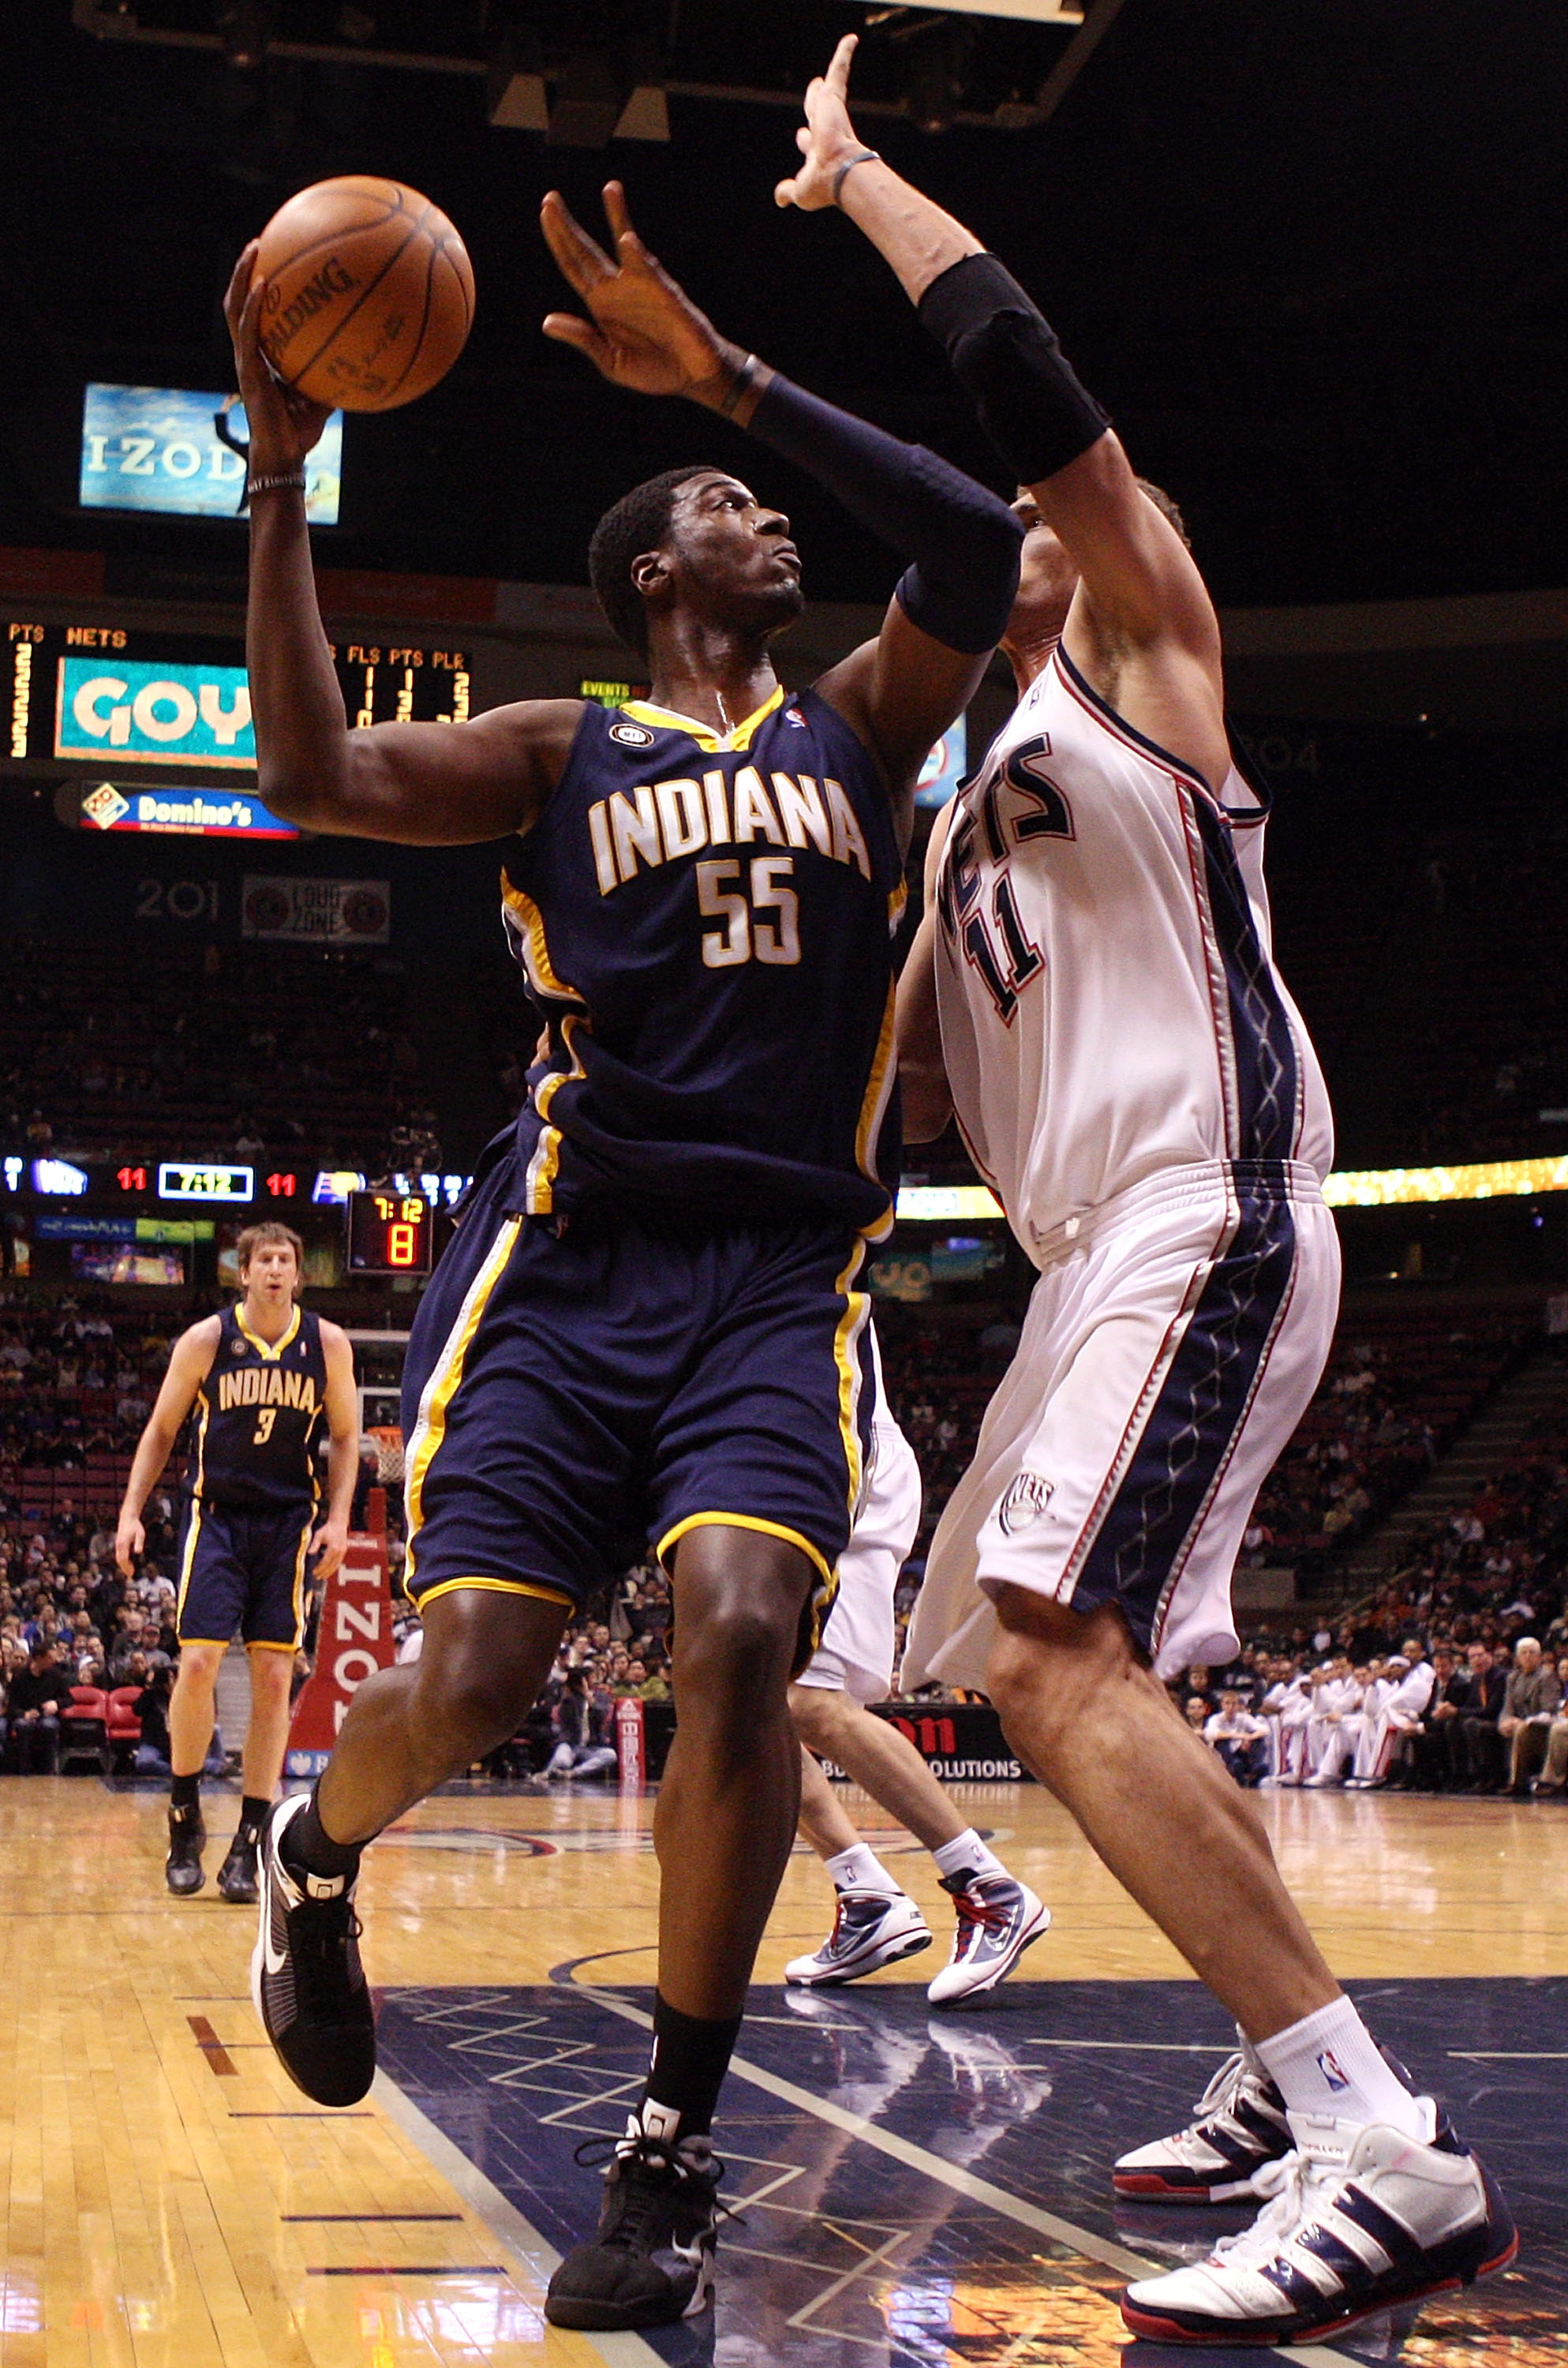 Roy Hibbert (l) and Brooke Lopez (r)